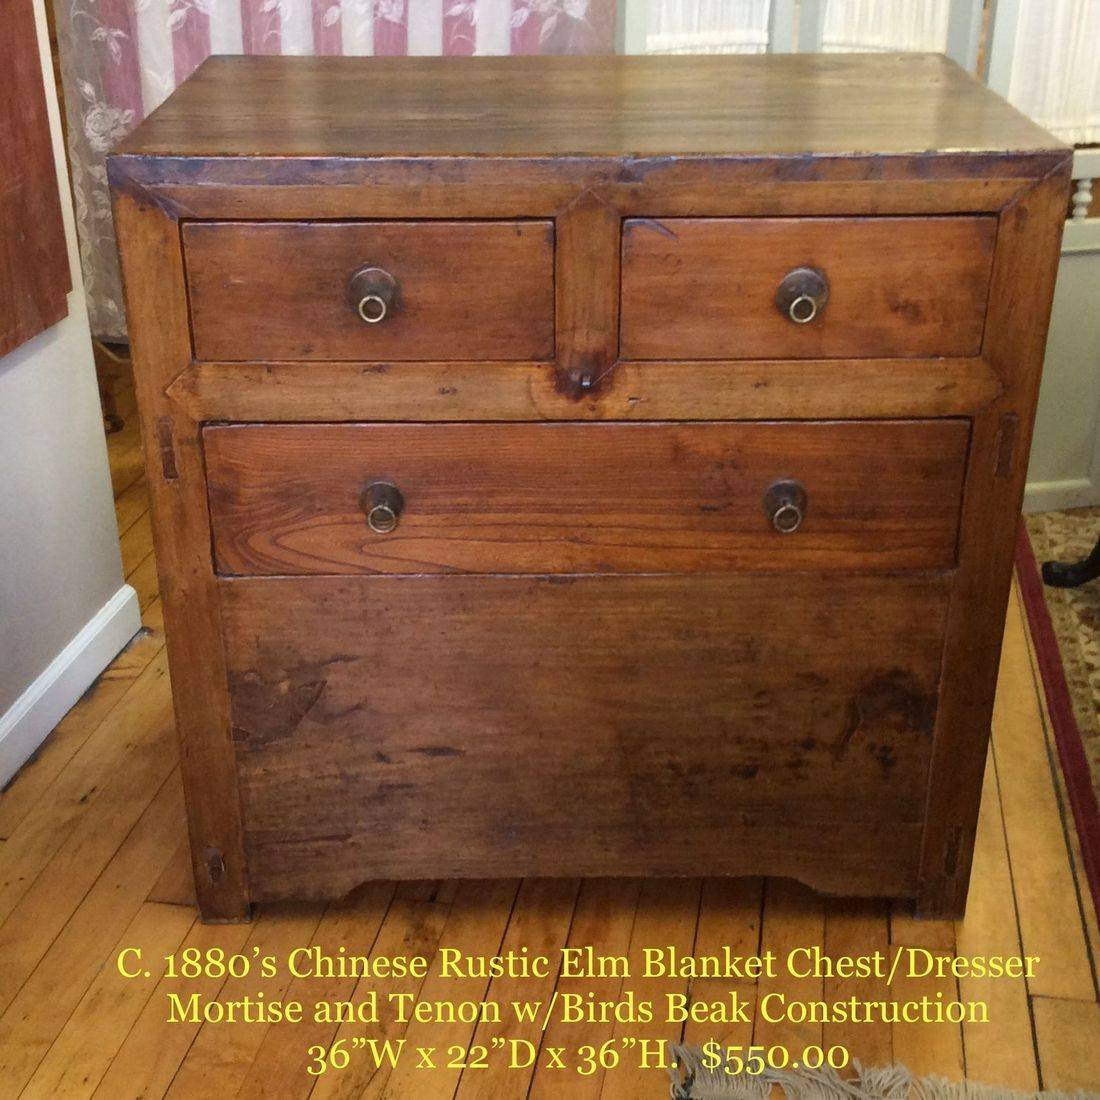 "19th Century Chinese Rustic Elm Blanket Chest/Dresser, Mortise and Tenon Construction w/Brass Ring-Pull Handles C. 1880's  36-1/2""W x 22""D x 36-1/4""H.  $550.00"